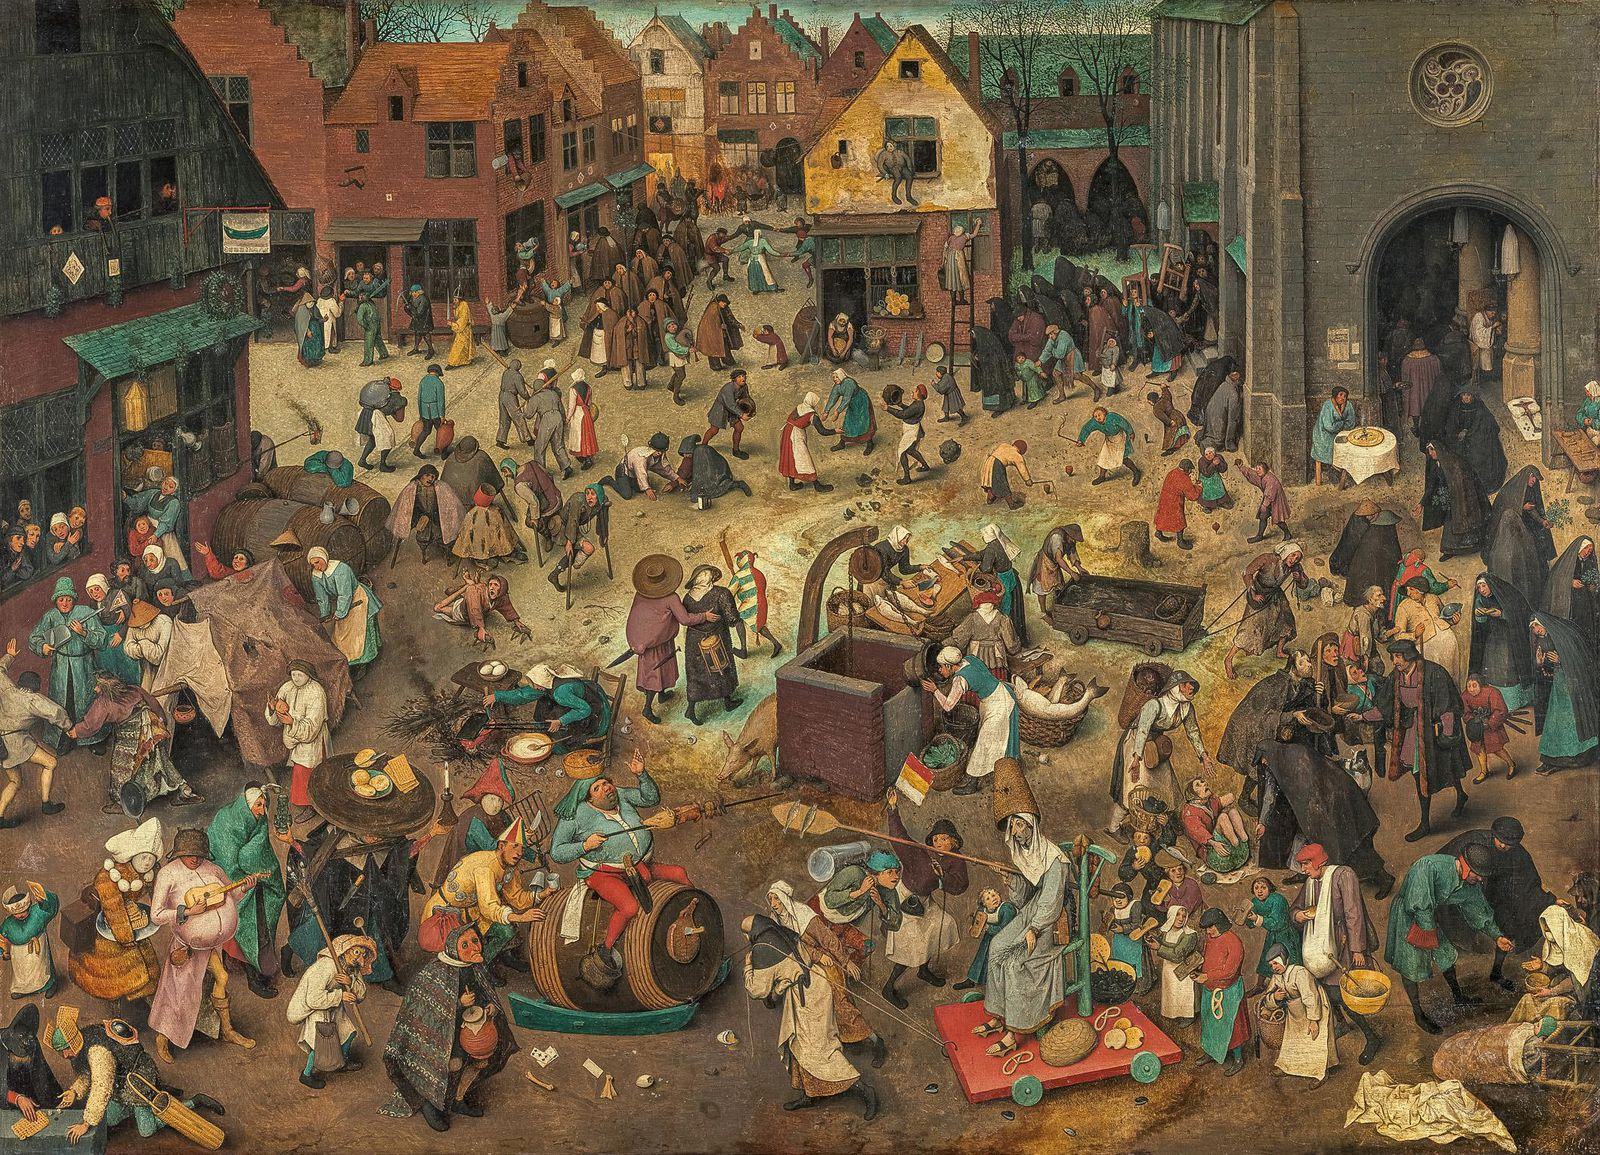 The Battle Between Carnival and Lent  by Pieter Bruegel the Elder, 1559